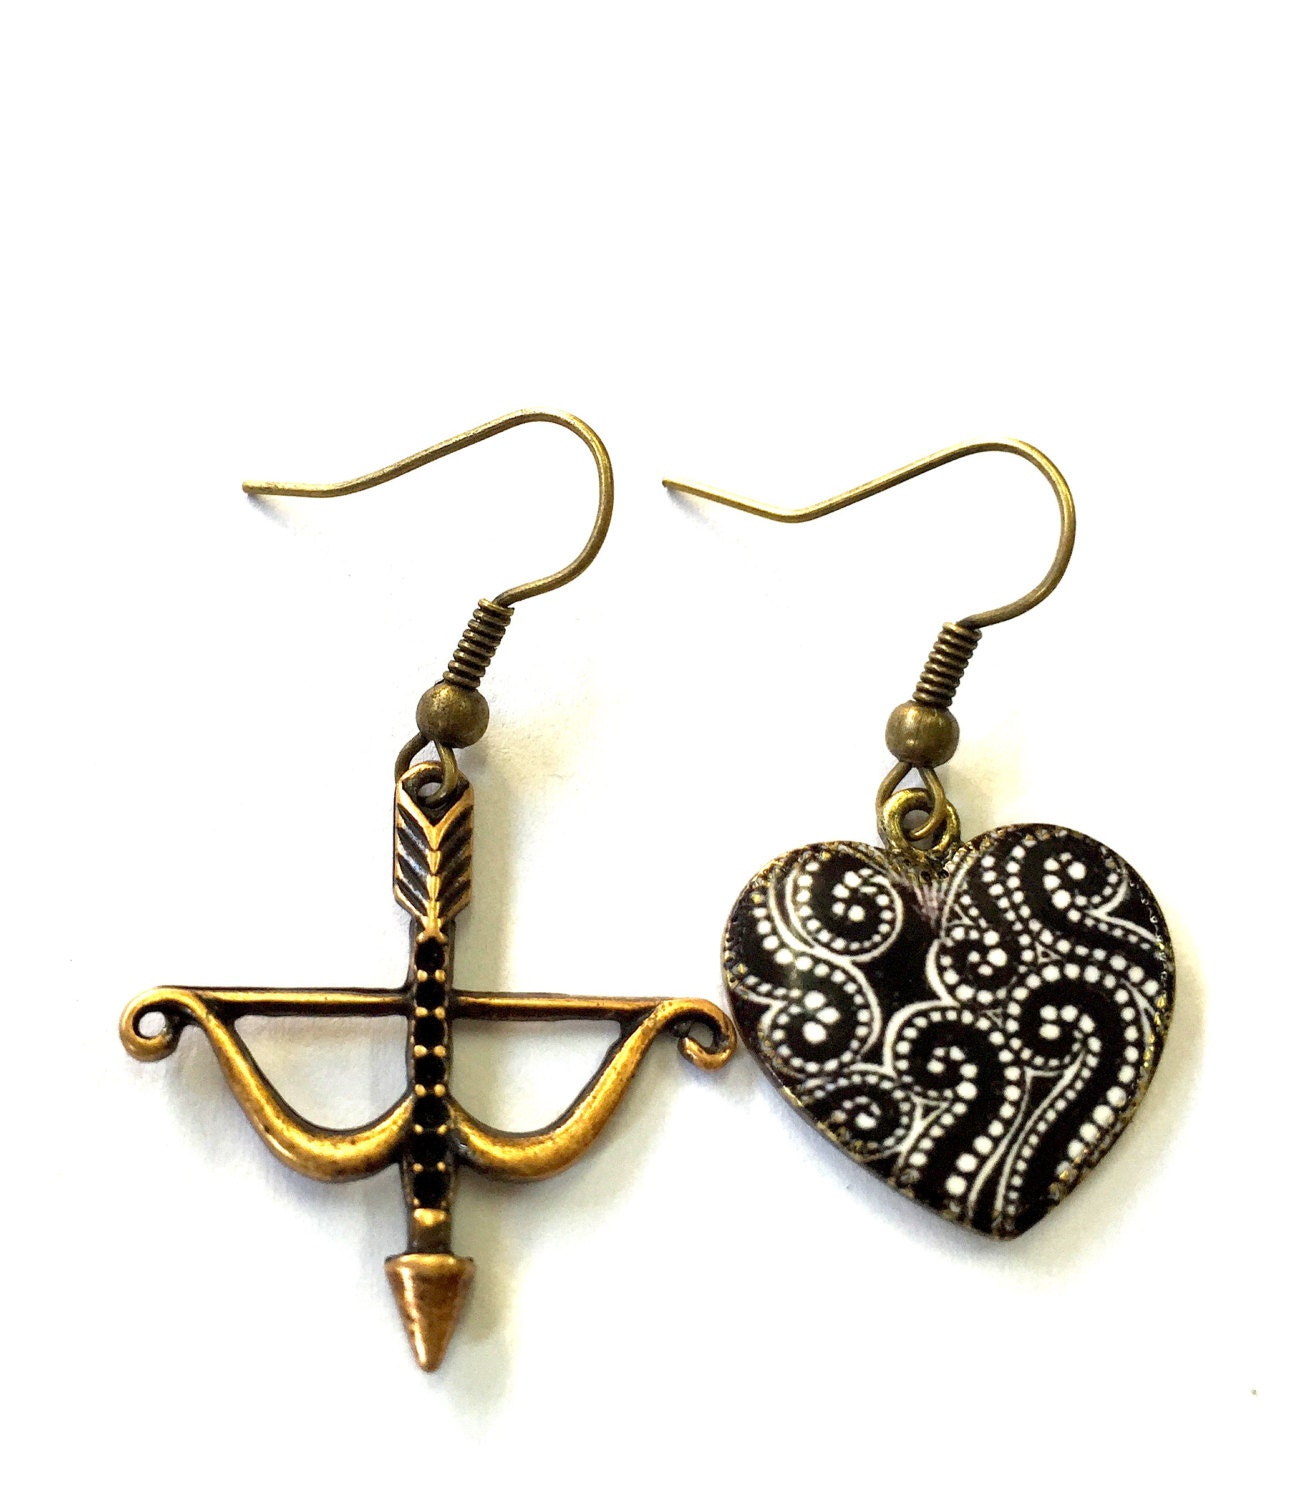 Bow and Arrow Black and White Heart Earrings